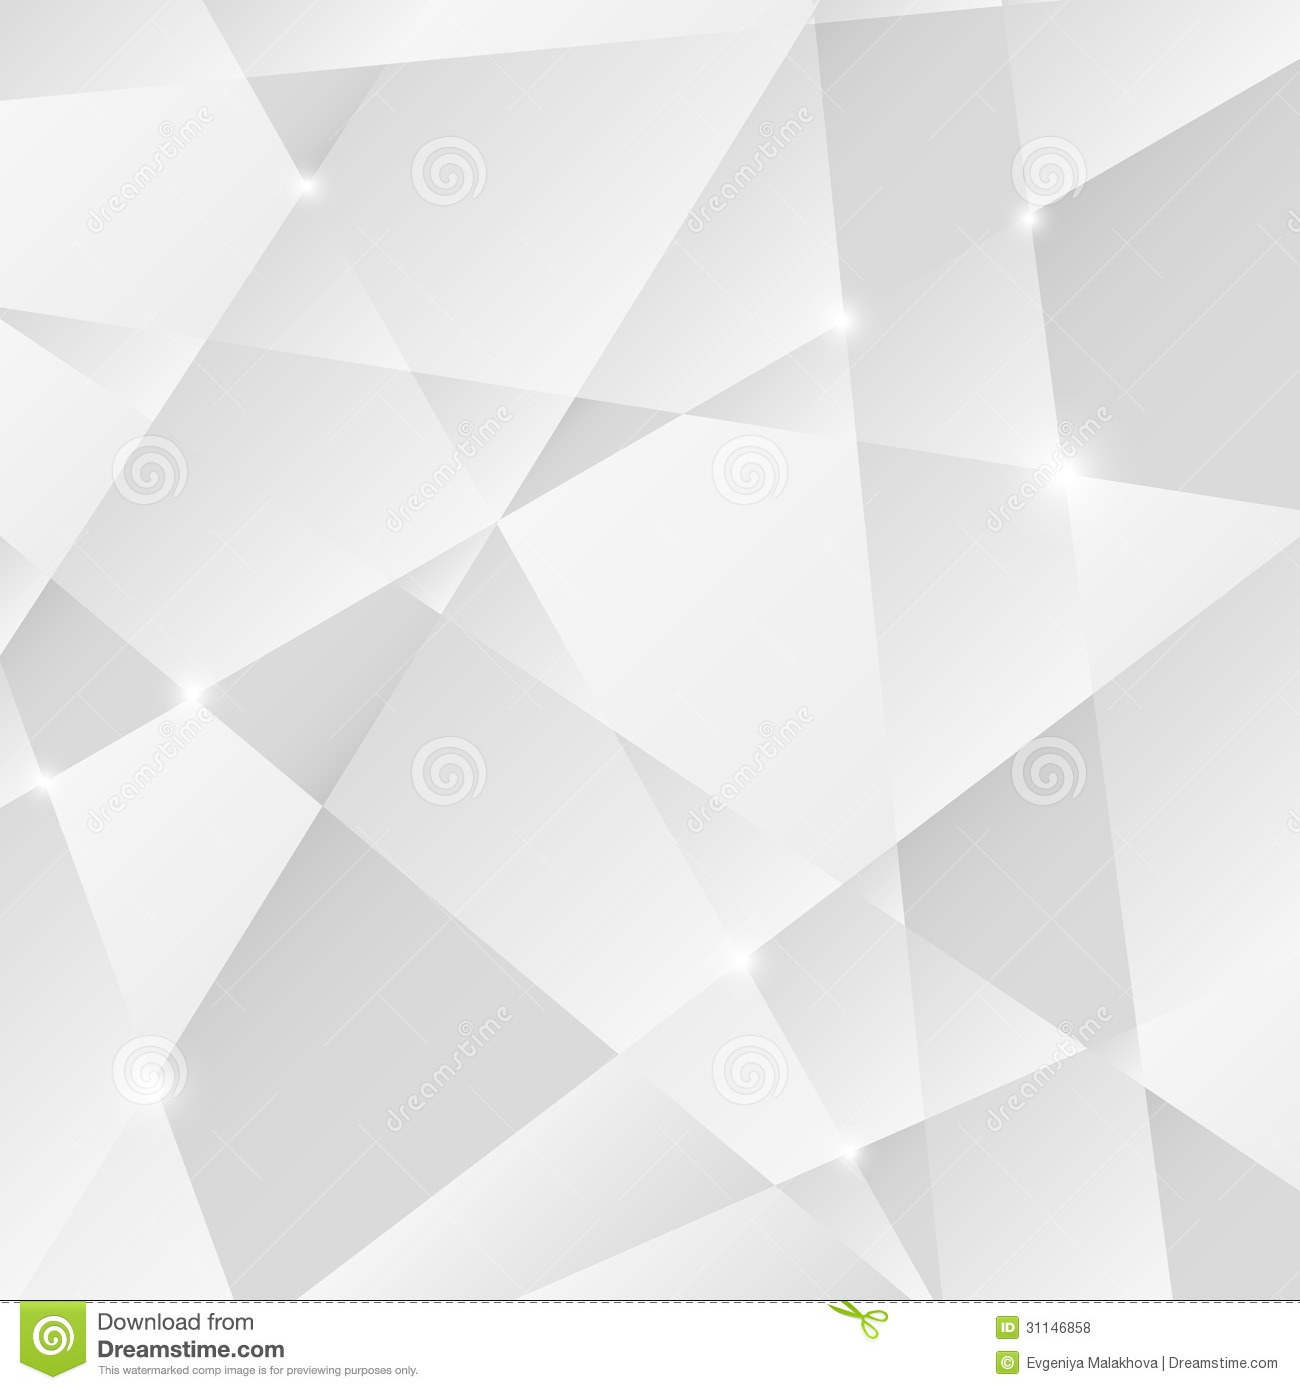 Yousef Abu-Taleb Wallpapers Triangle Background Triangle background